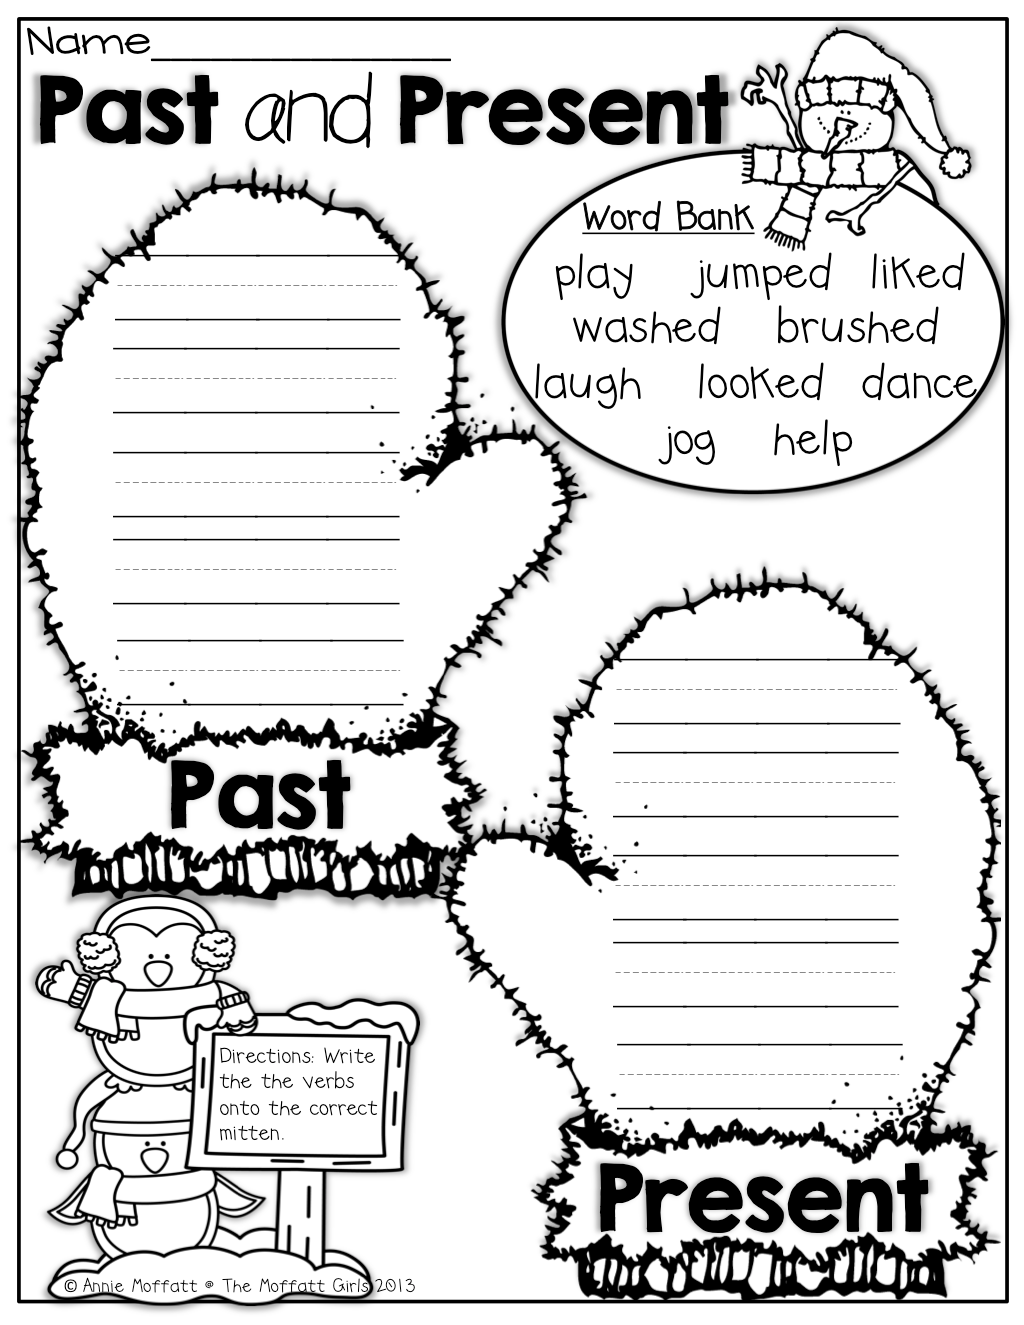 Past And Present Verbs